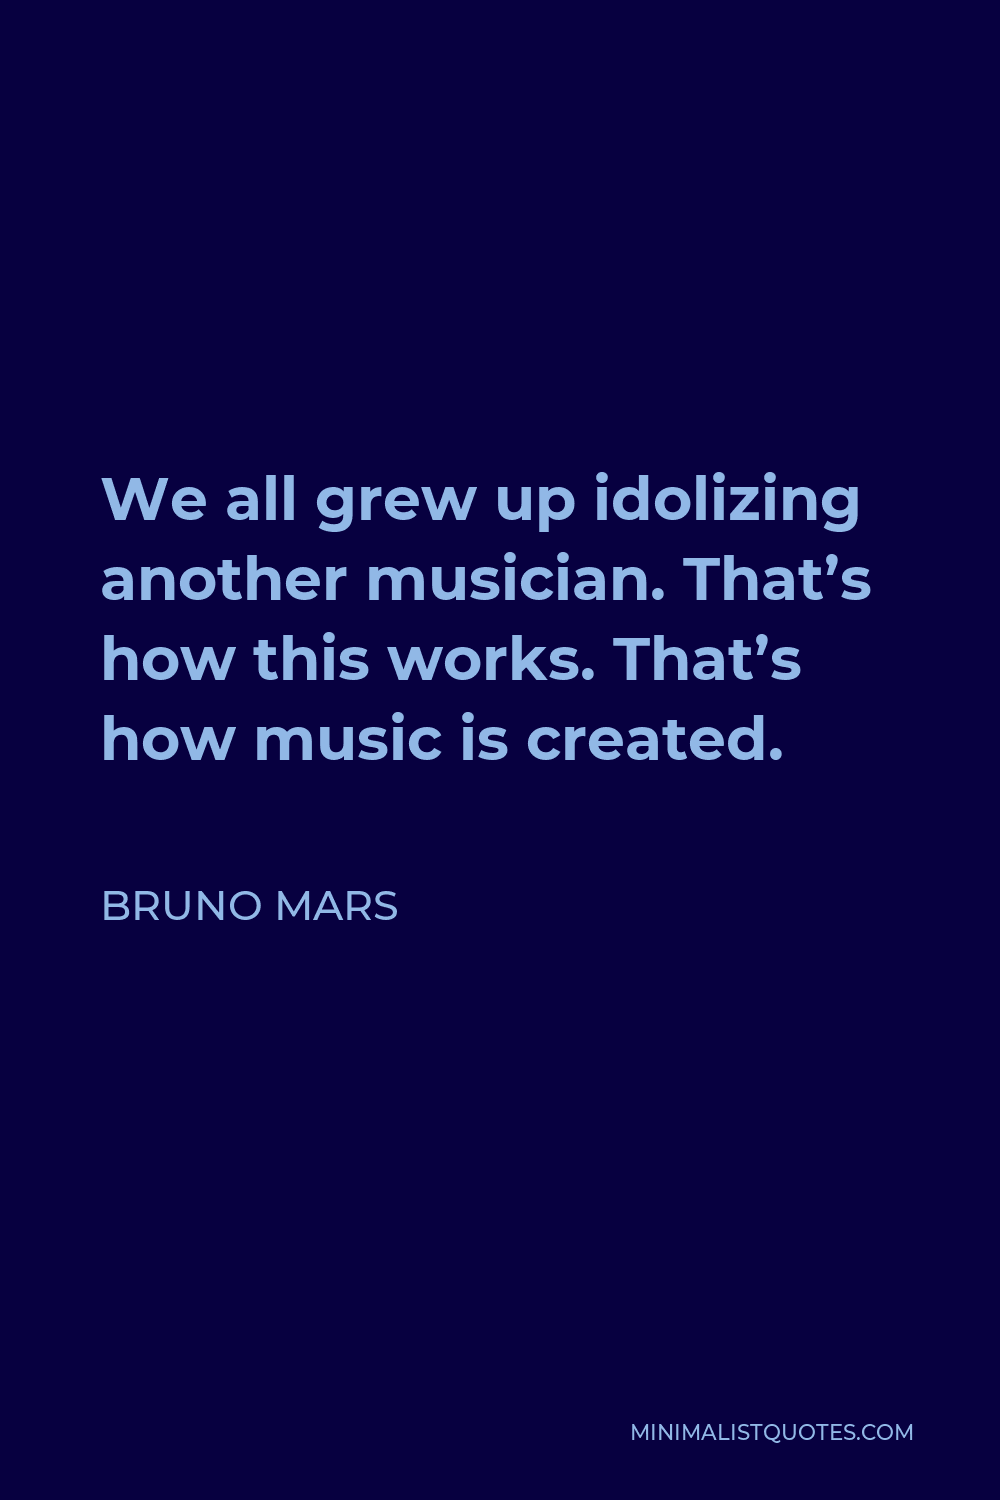 Bruno Mars Quote - We all grew up idolizing another musician. That's how this works. That's how music is created.